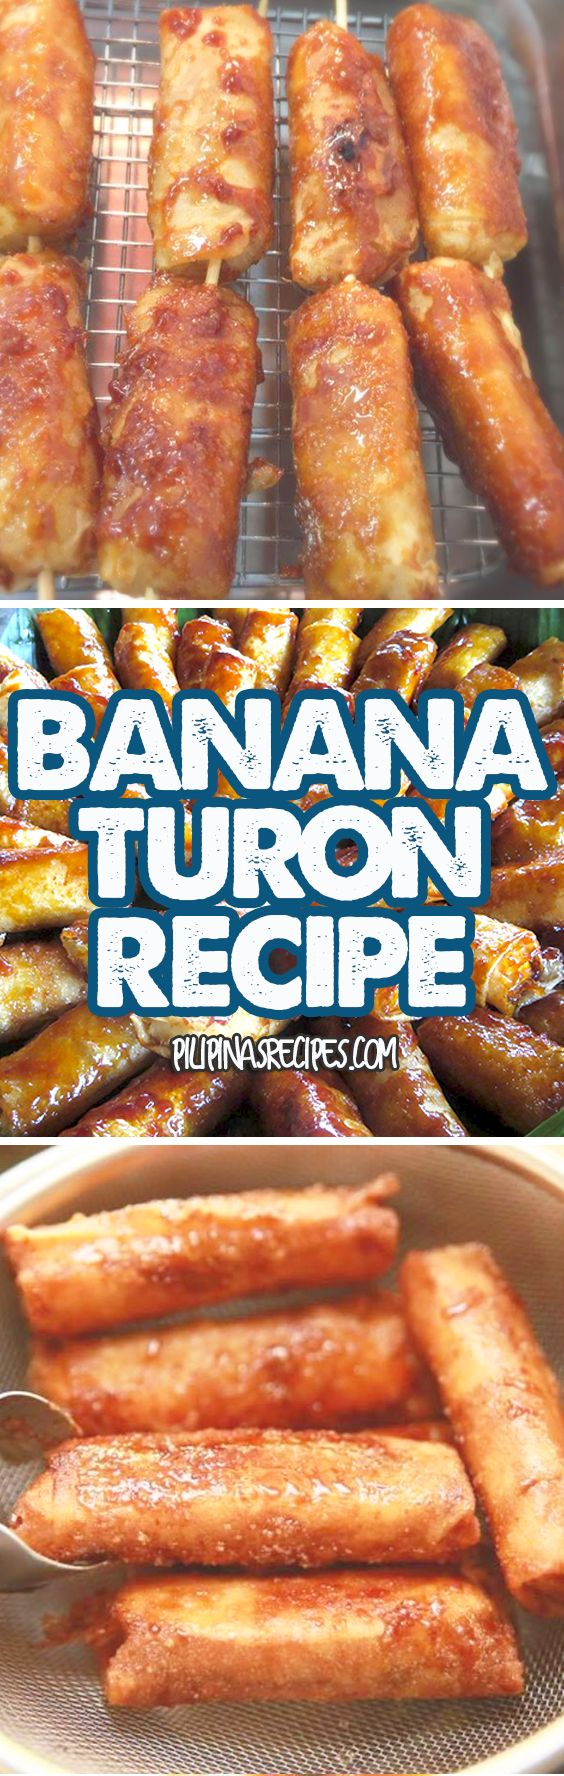 "Turon is a common dessert or snack food in the Philippines. Many ""Street Food"" Vendors also sell it because it's popular among Pinoys"